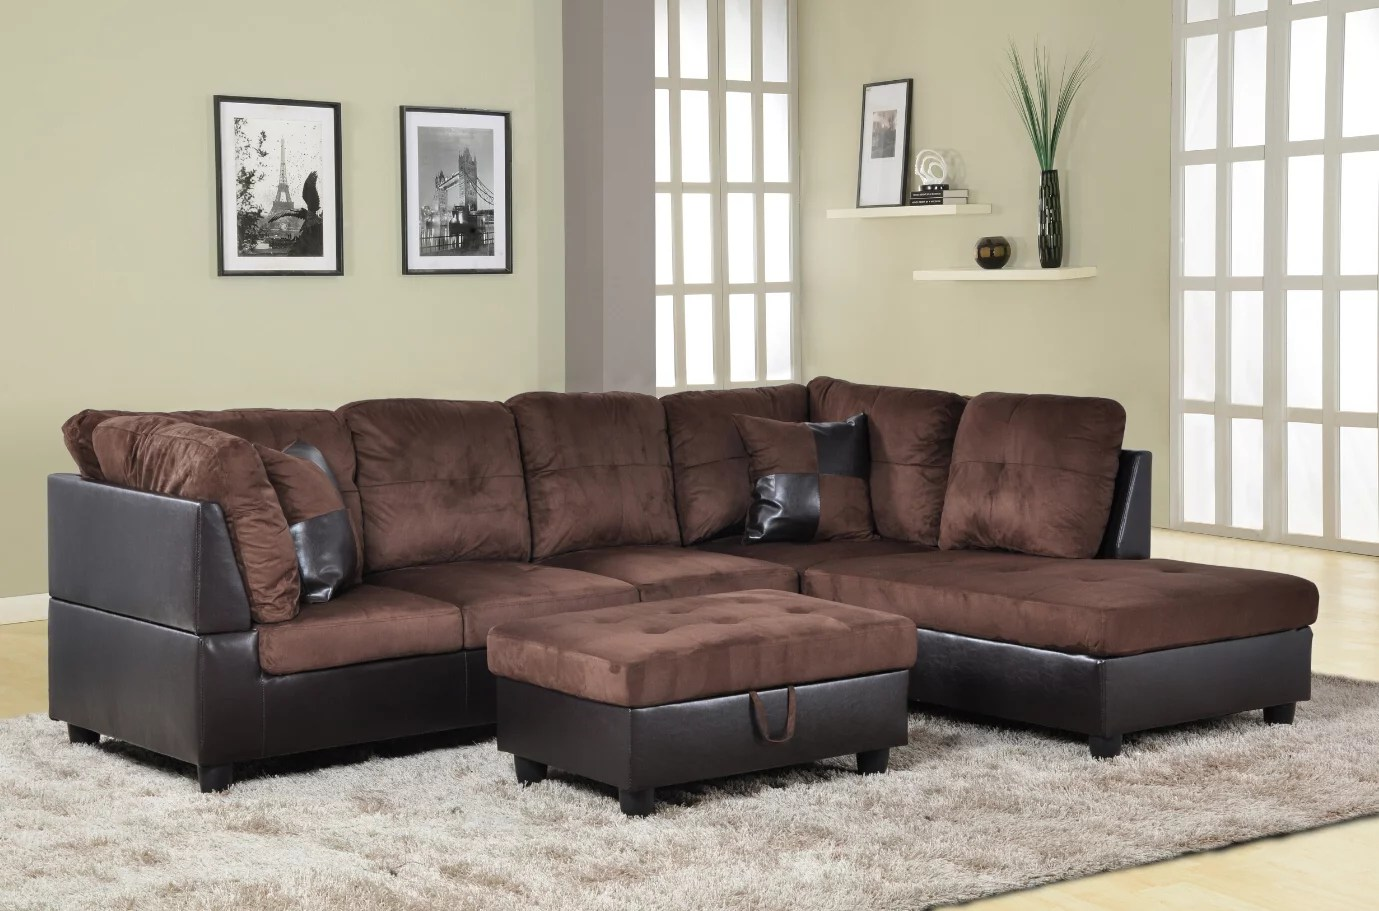 for u furnishing charming chocolate microfiber sectional sofa right facing chaise 74 5 d x 103 5 w x 35 h